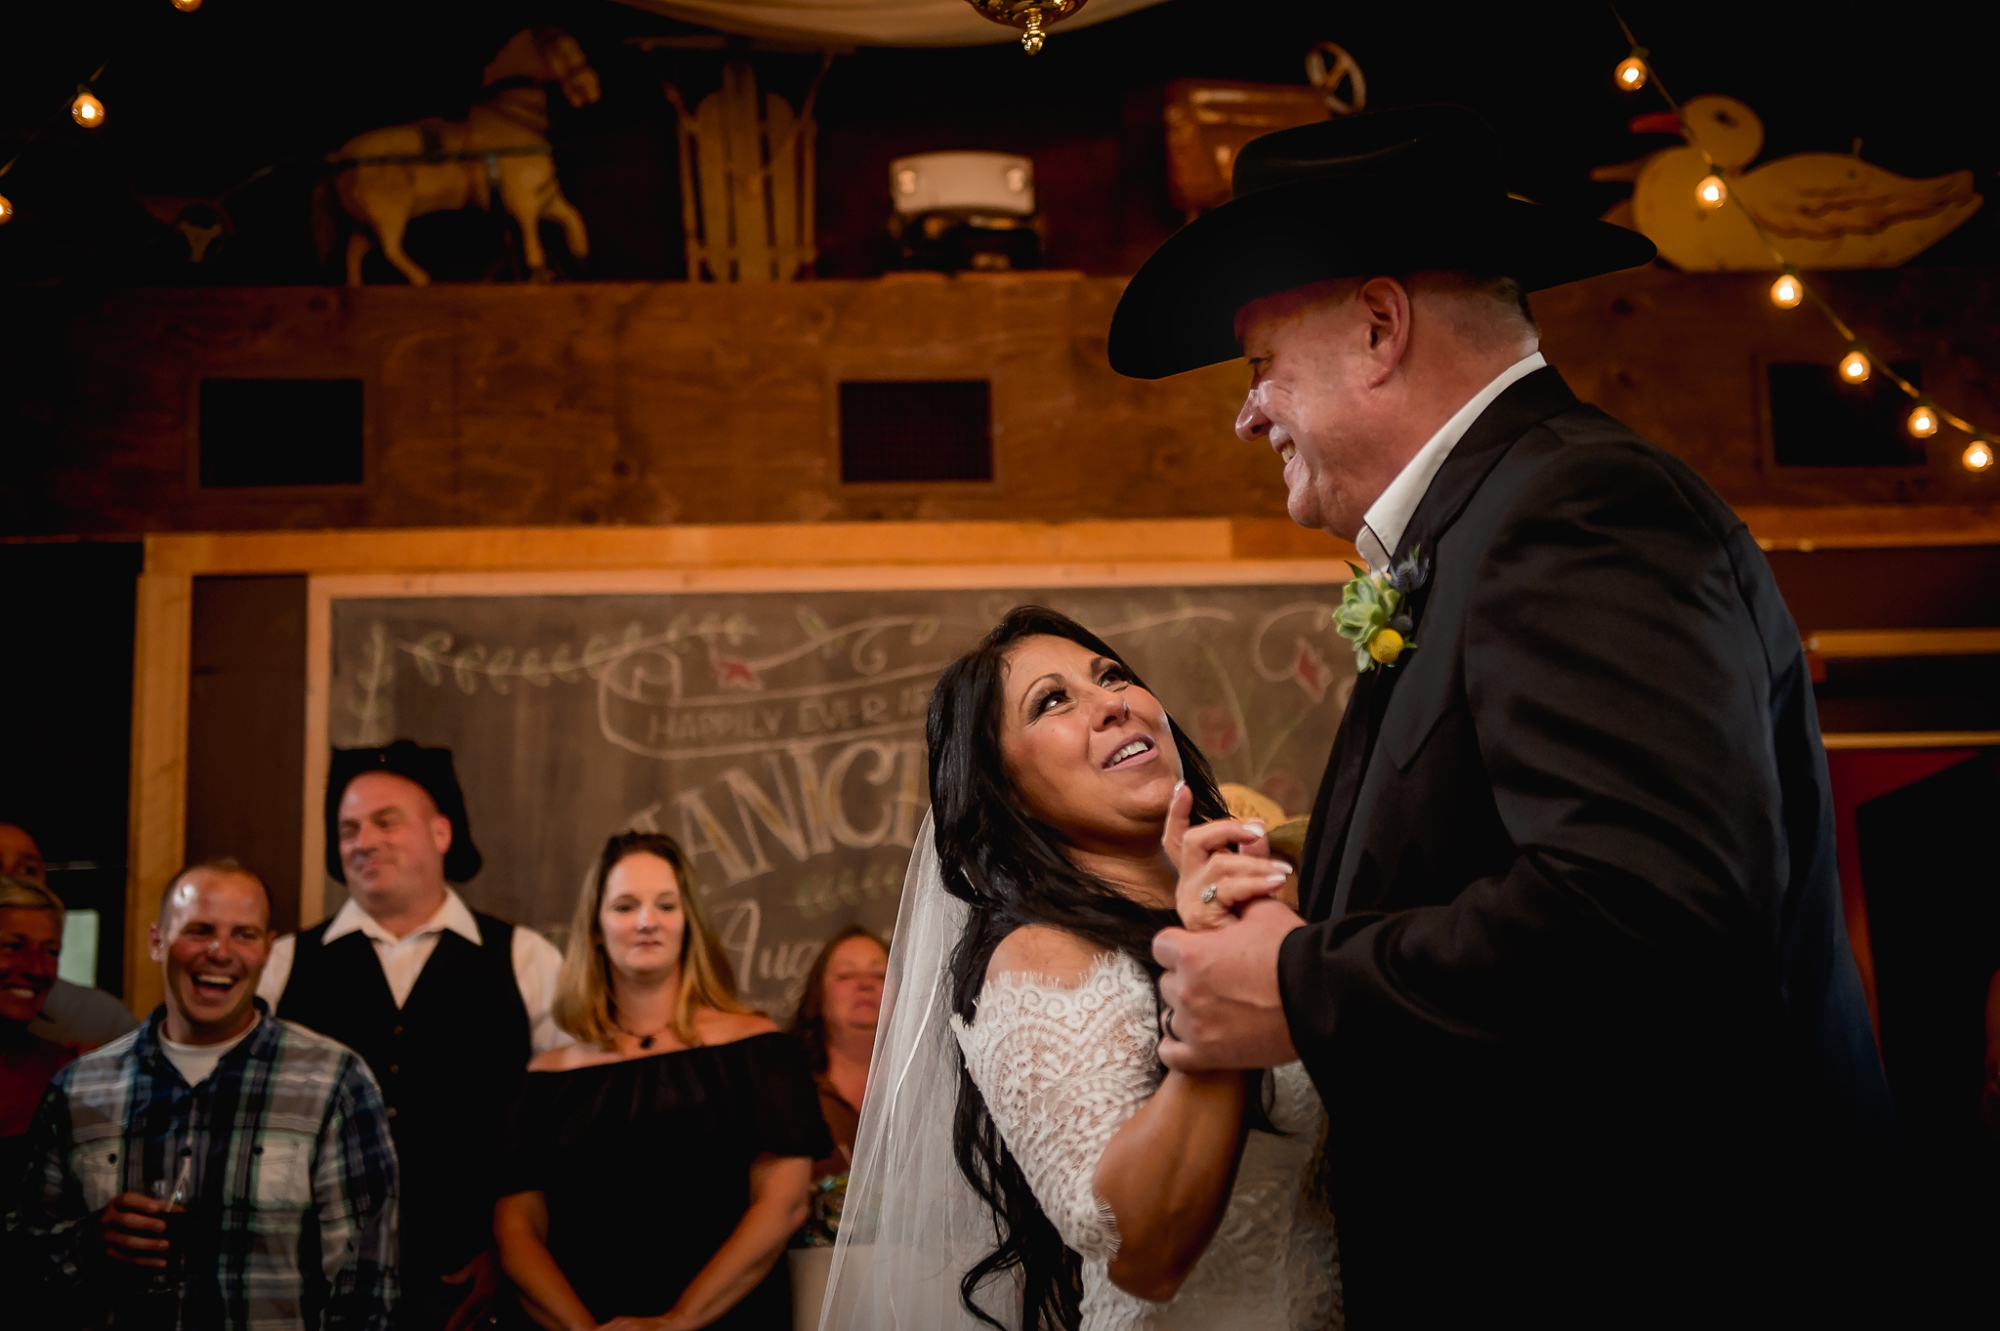 Jacks-Barn-Wedding-Janine-Collette-Photography54